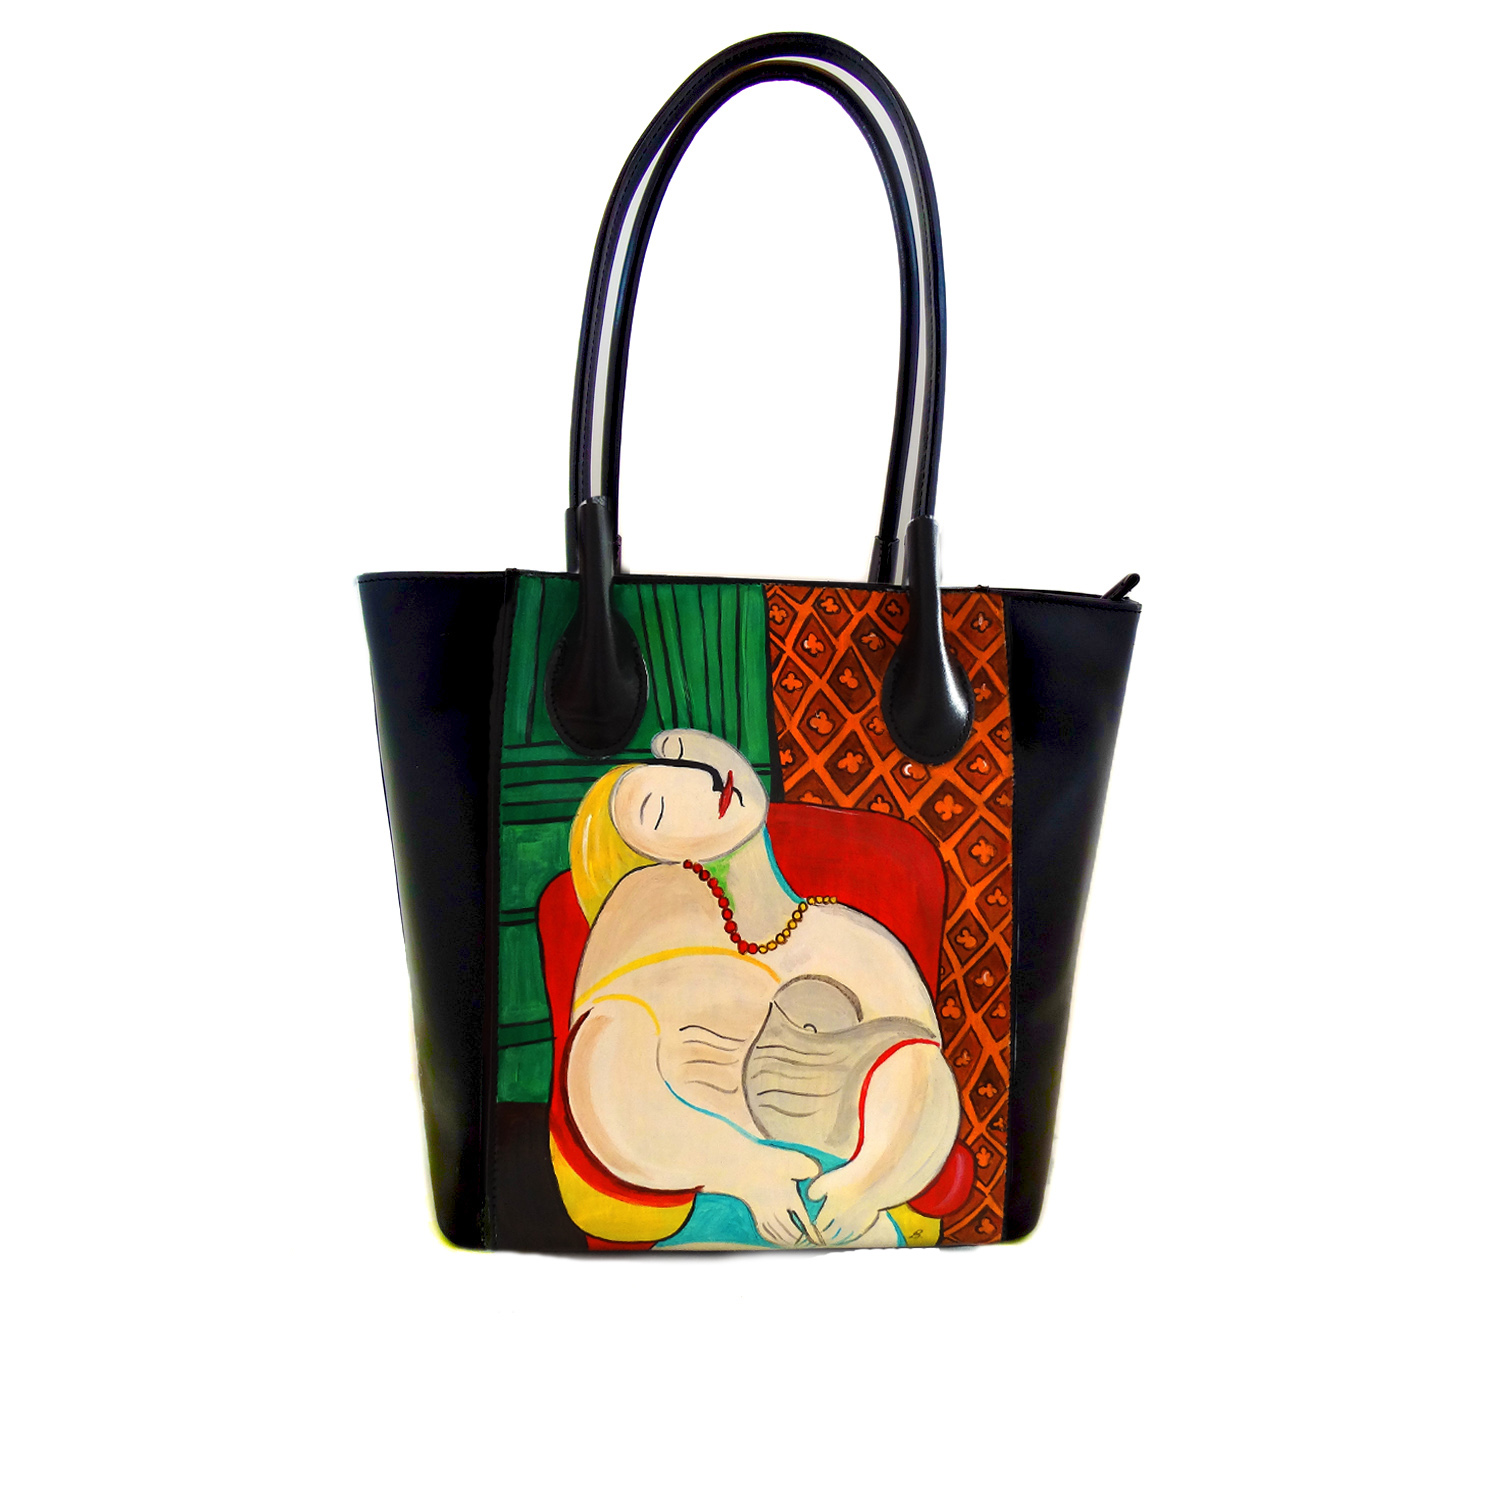 Handpainted bag - The dream by Picasso